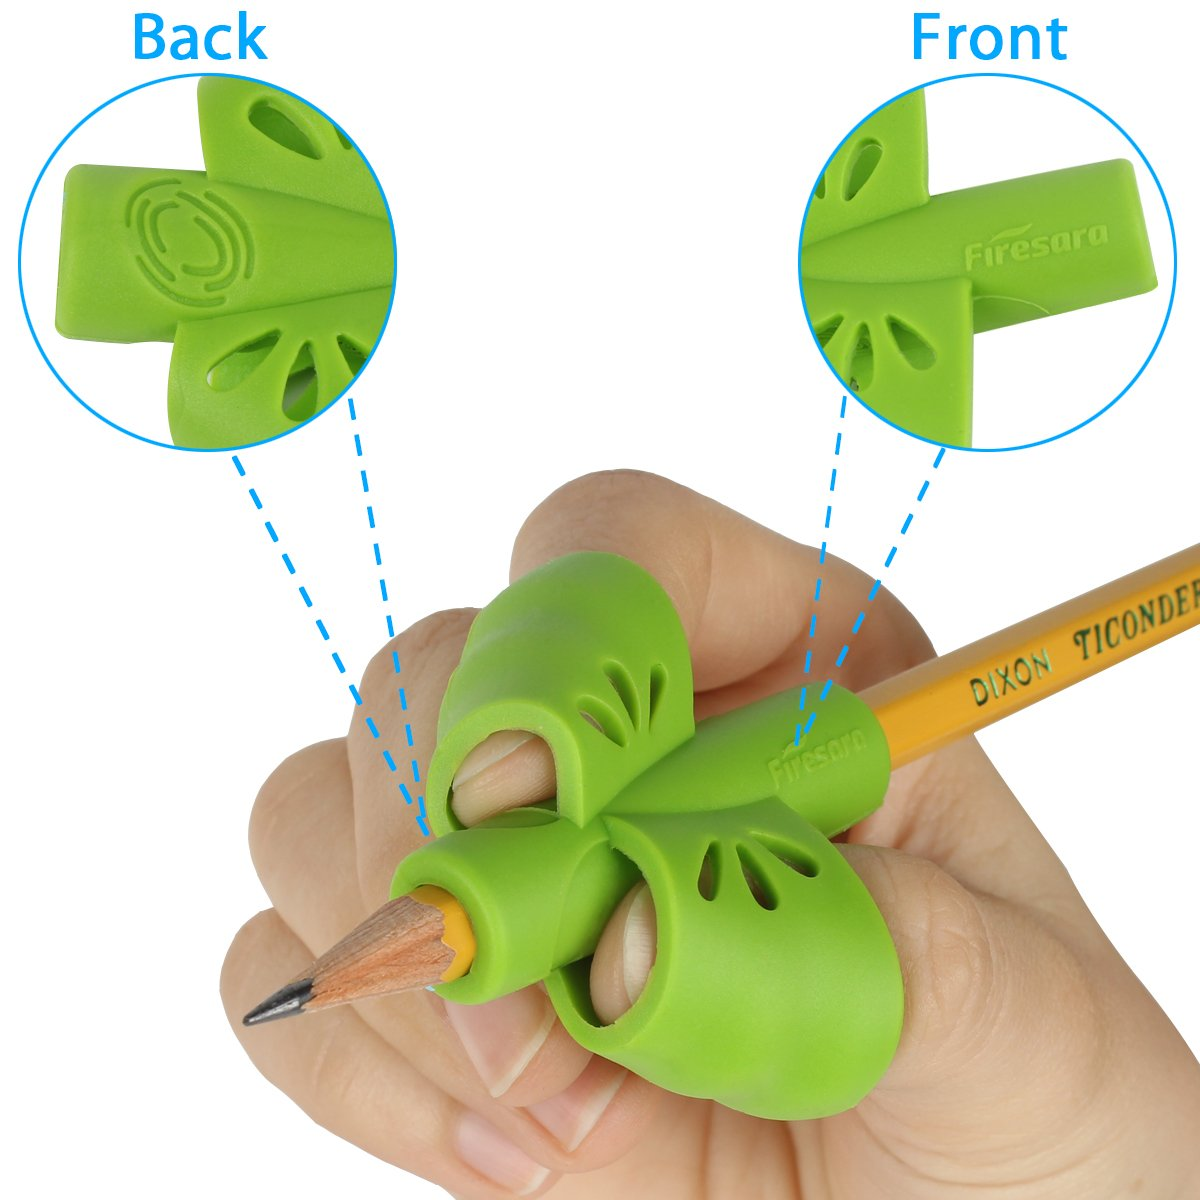 4PCS Firesara Original Handwriting Correction Finger Exclusive Butterfly Wings Design Assorted Grip Trainer for Righties Kids or Children or Preschoolers or Adults Pencil Grips